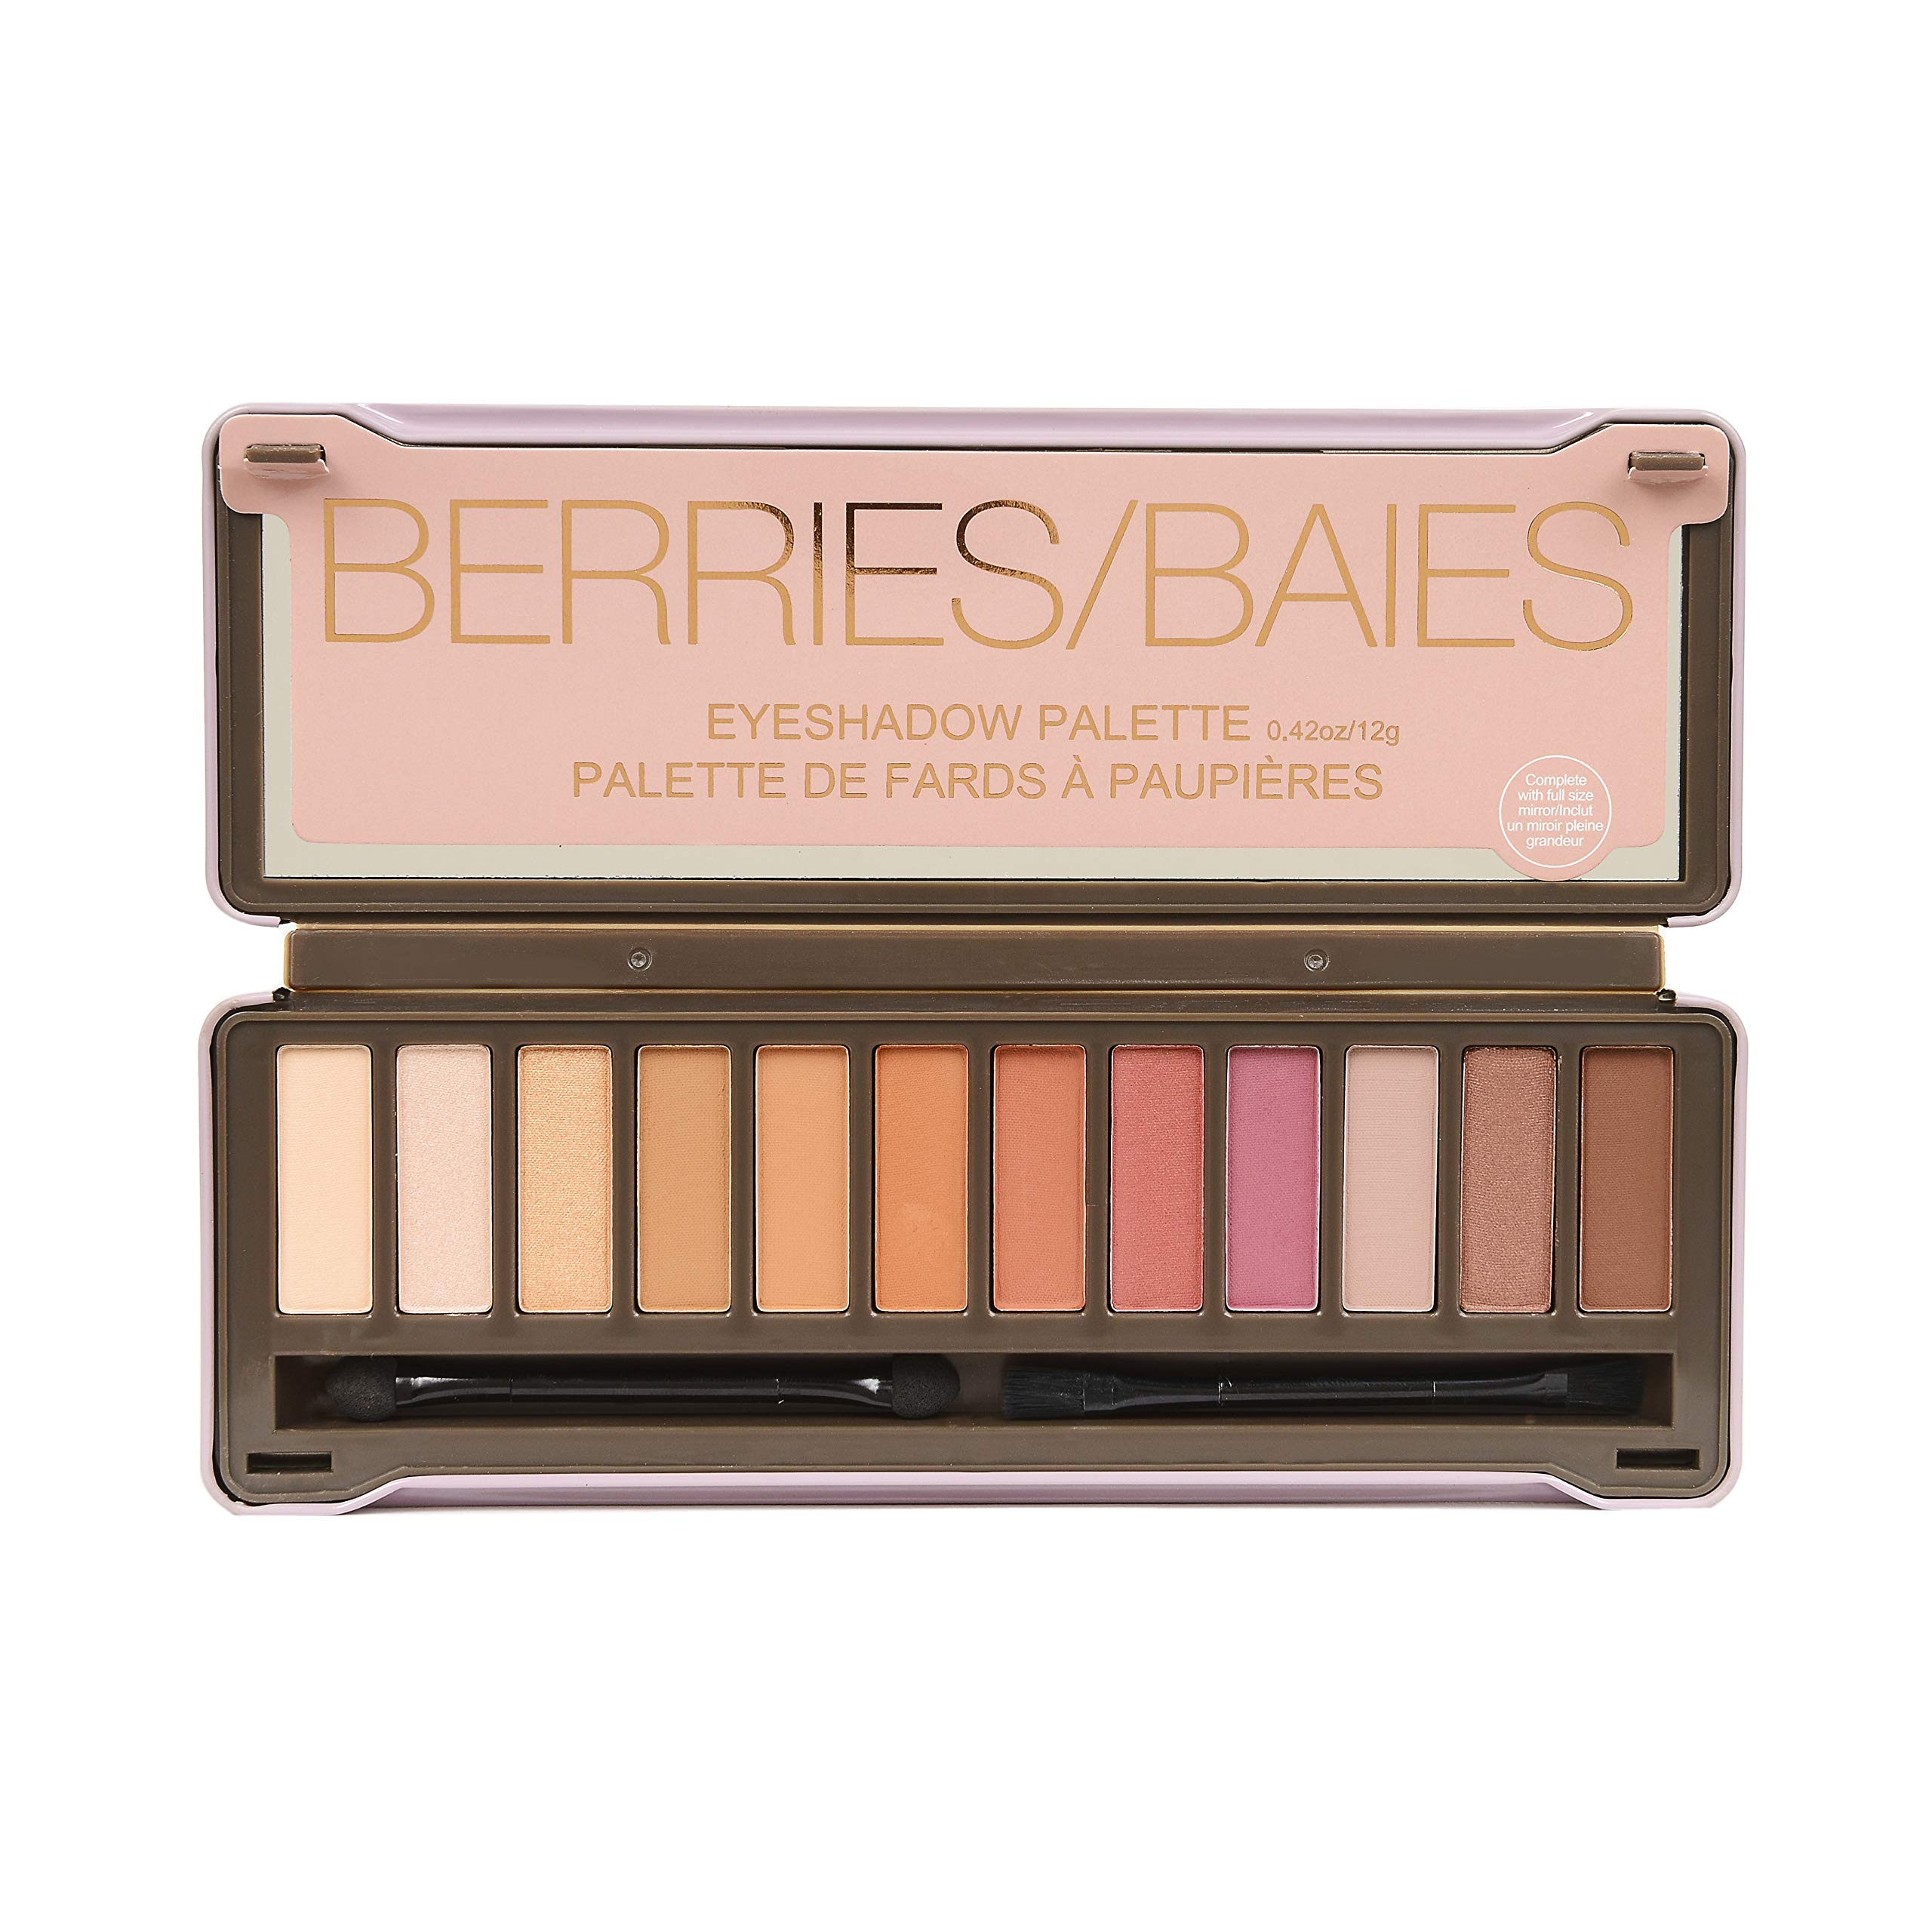 BYS Berries Eyeshadow Palette Tin (with French Translation) with Mirror Double Ended Applicator and Blender Highly Pigmented 12 Matte & Metallic Shades